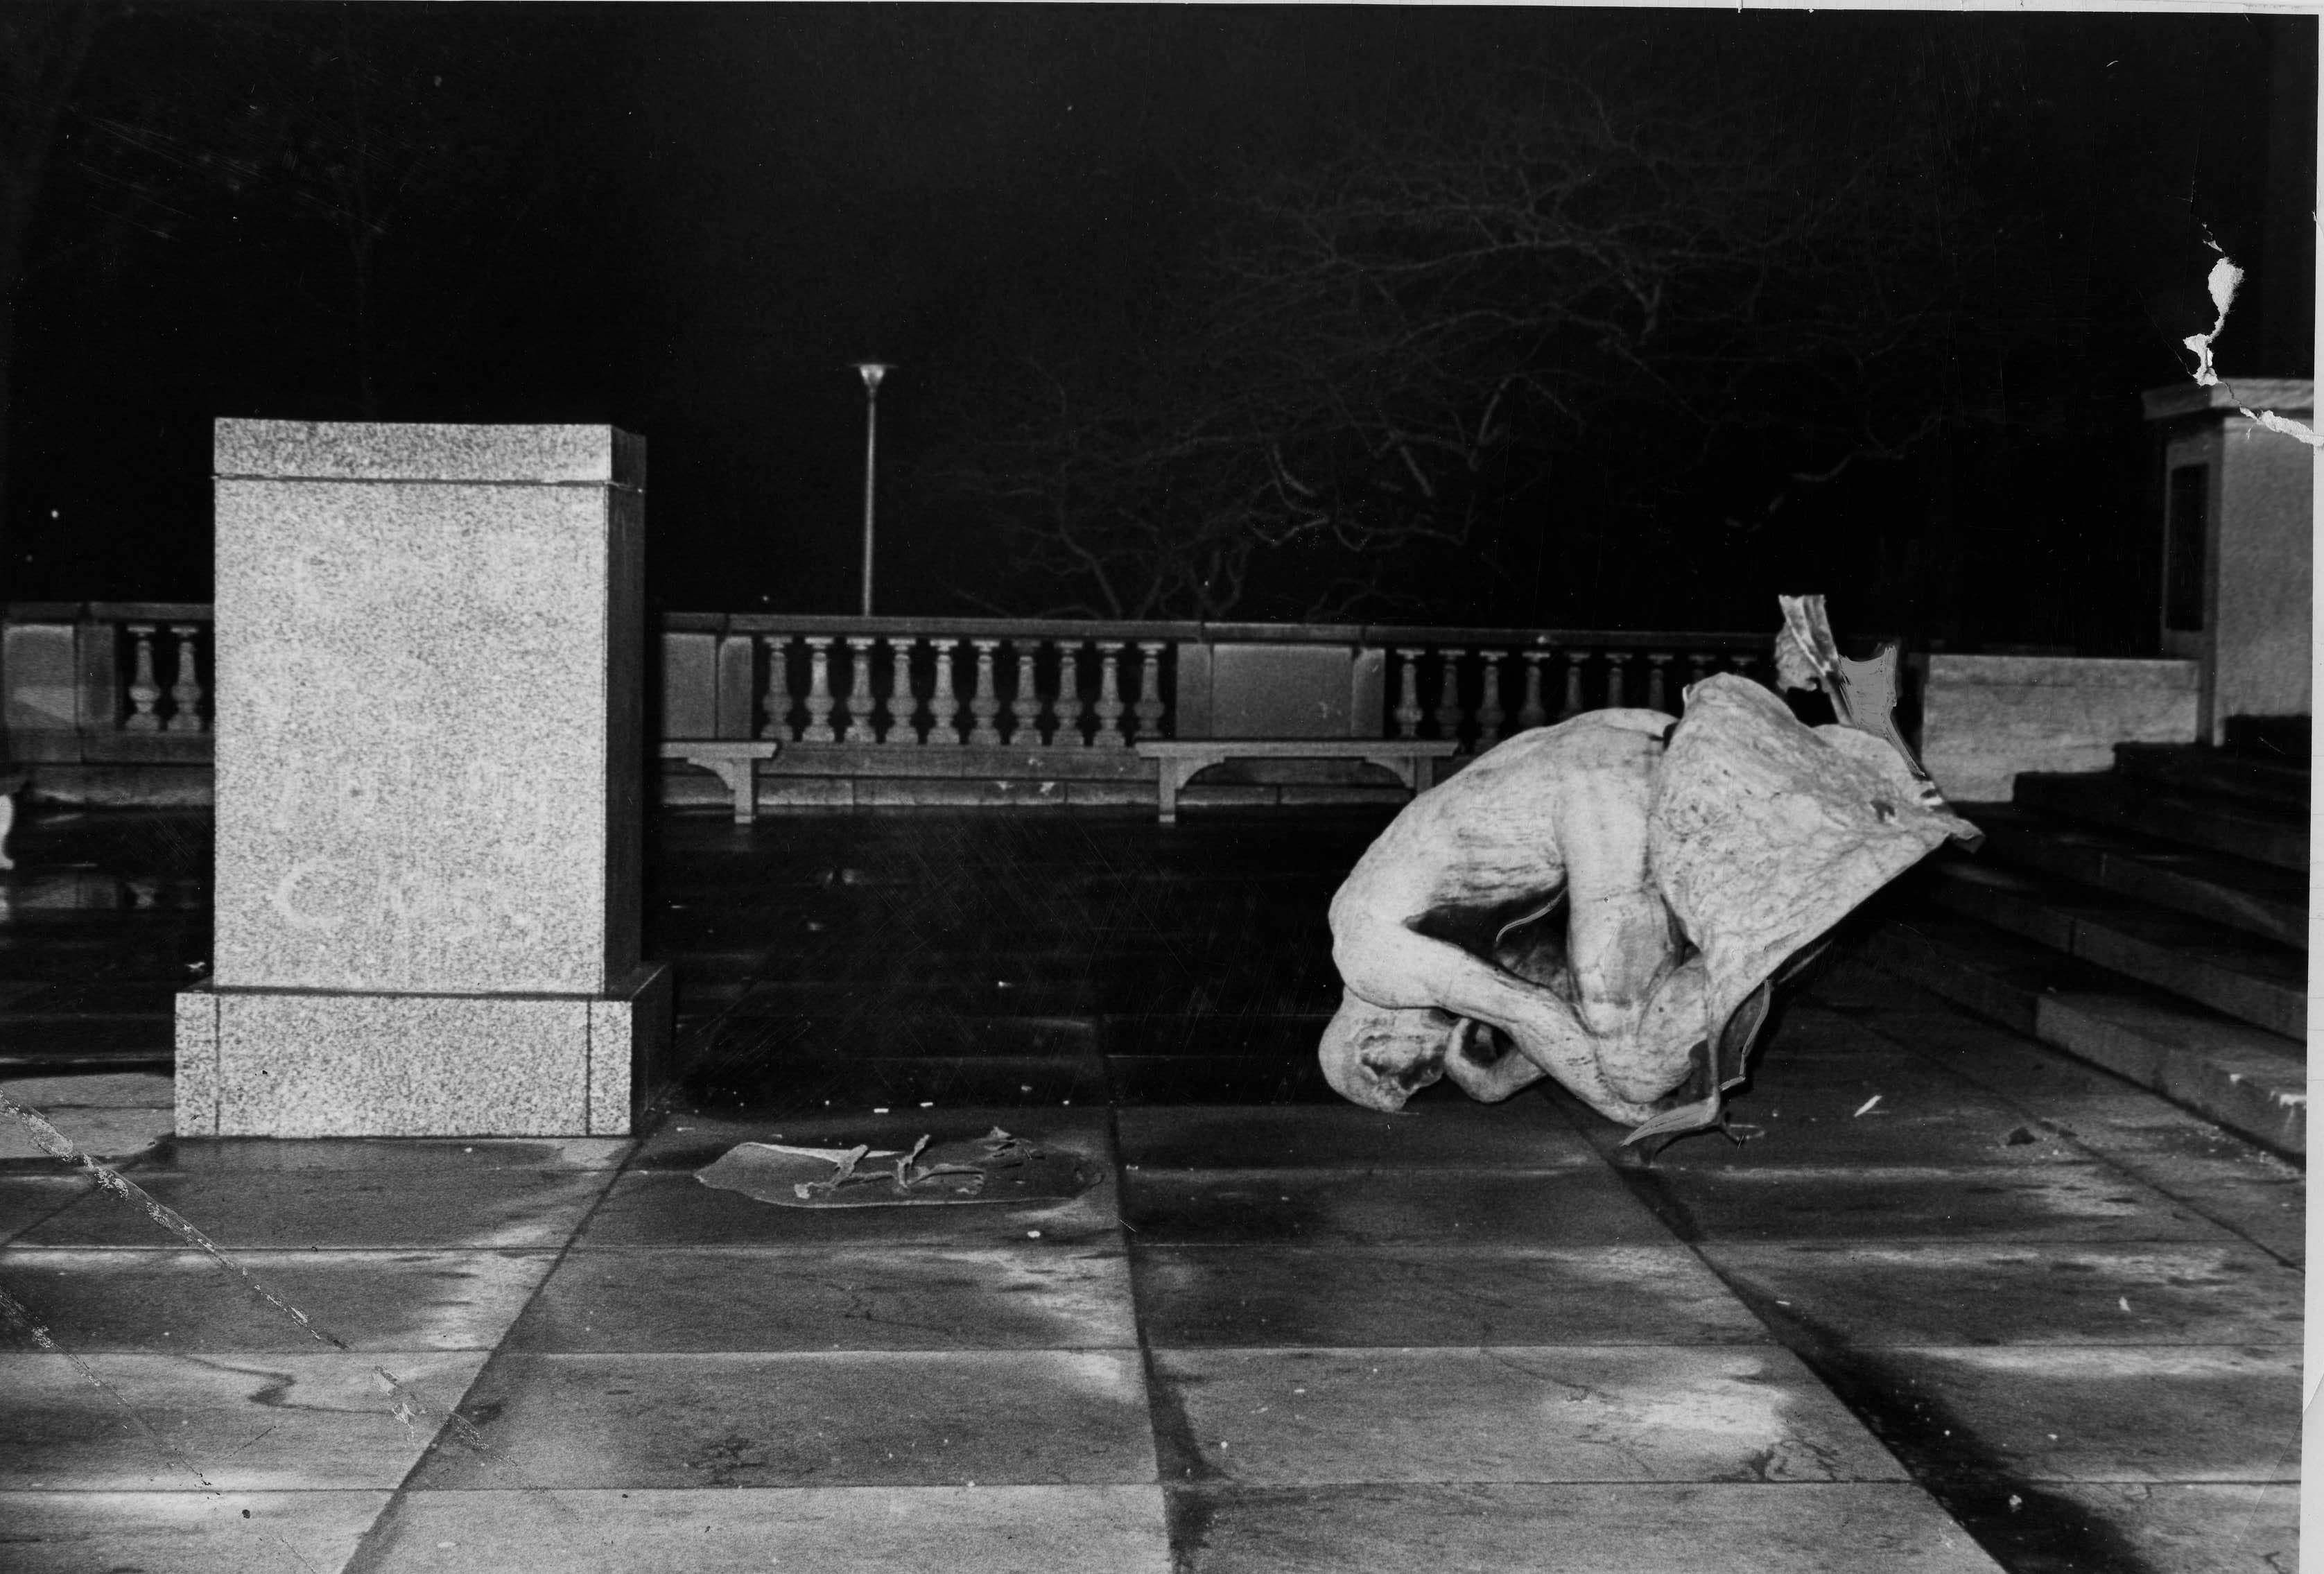 In 1970 Unknown Person Group Bombed Rodin' Statue Thinker Front Of Cleveland